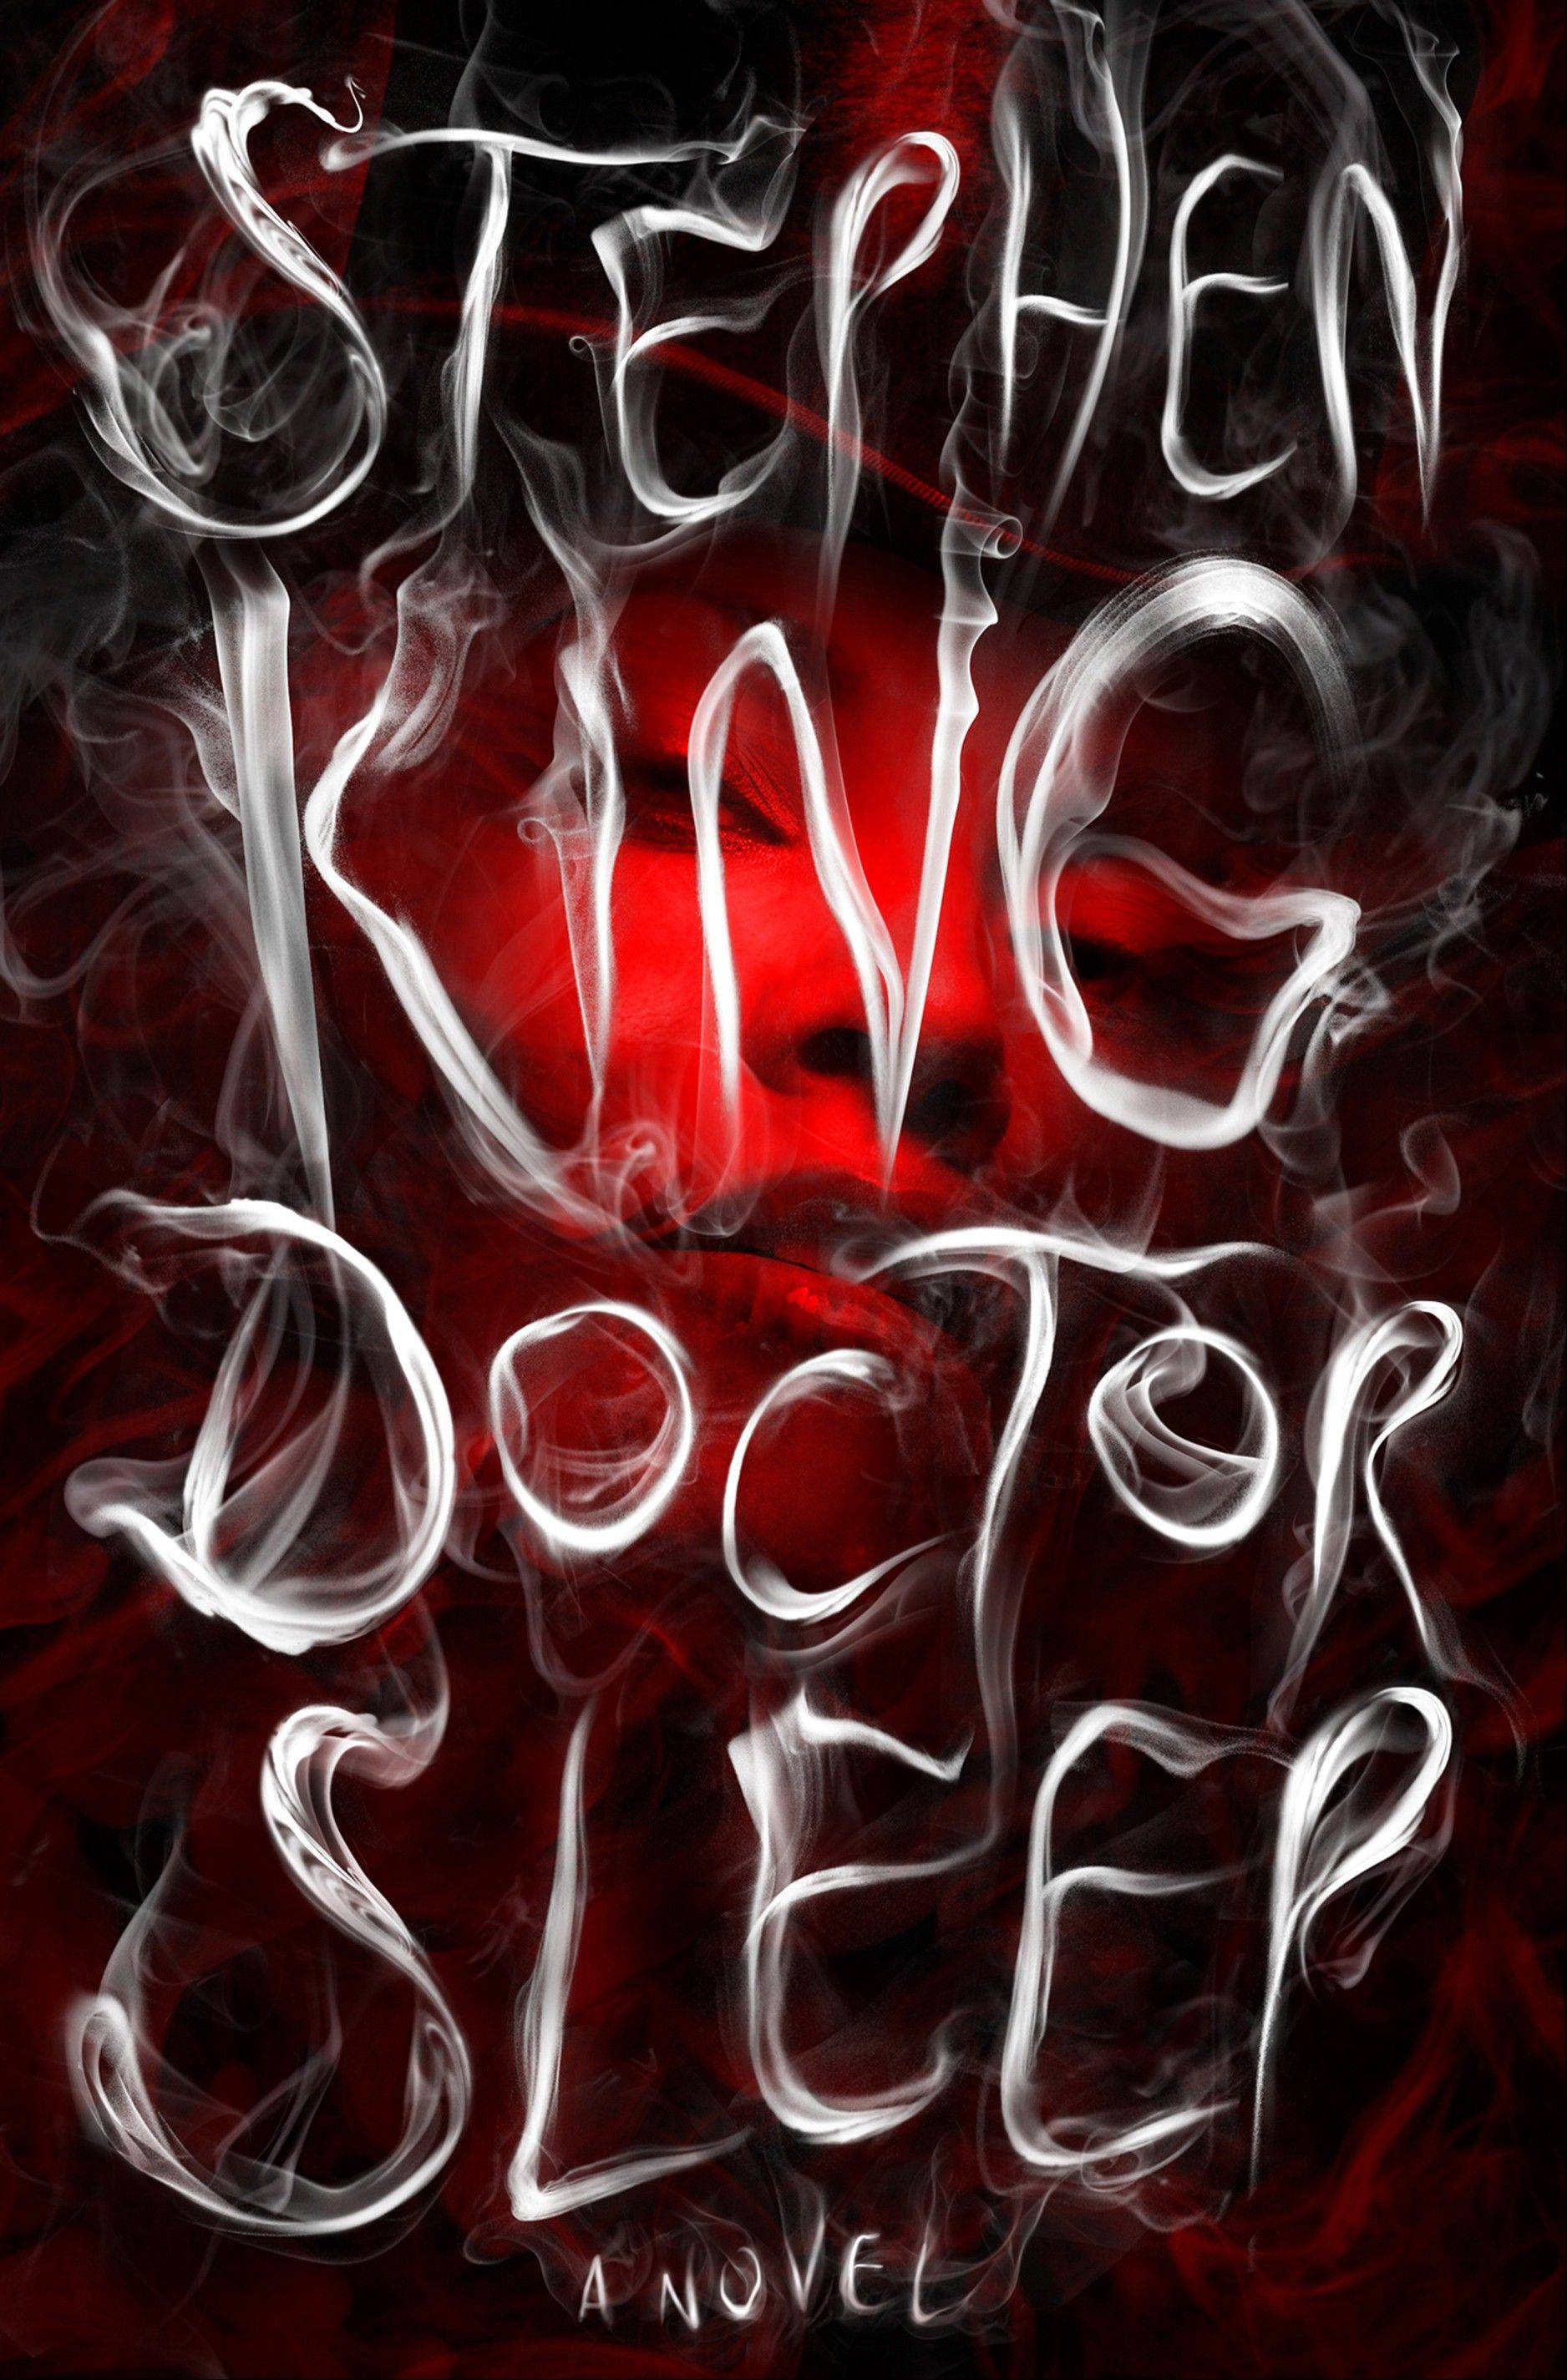 """Doctor Sleep"" by Stephen King"